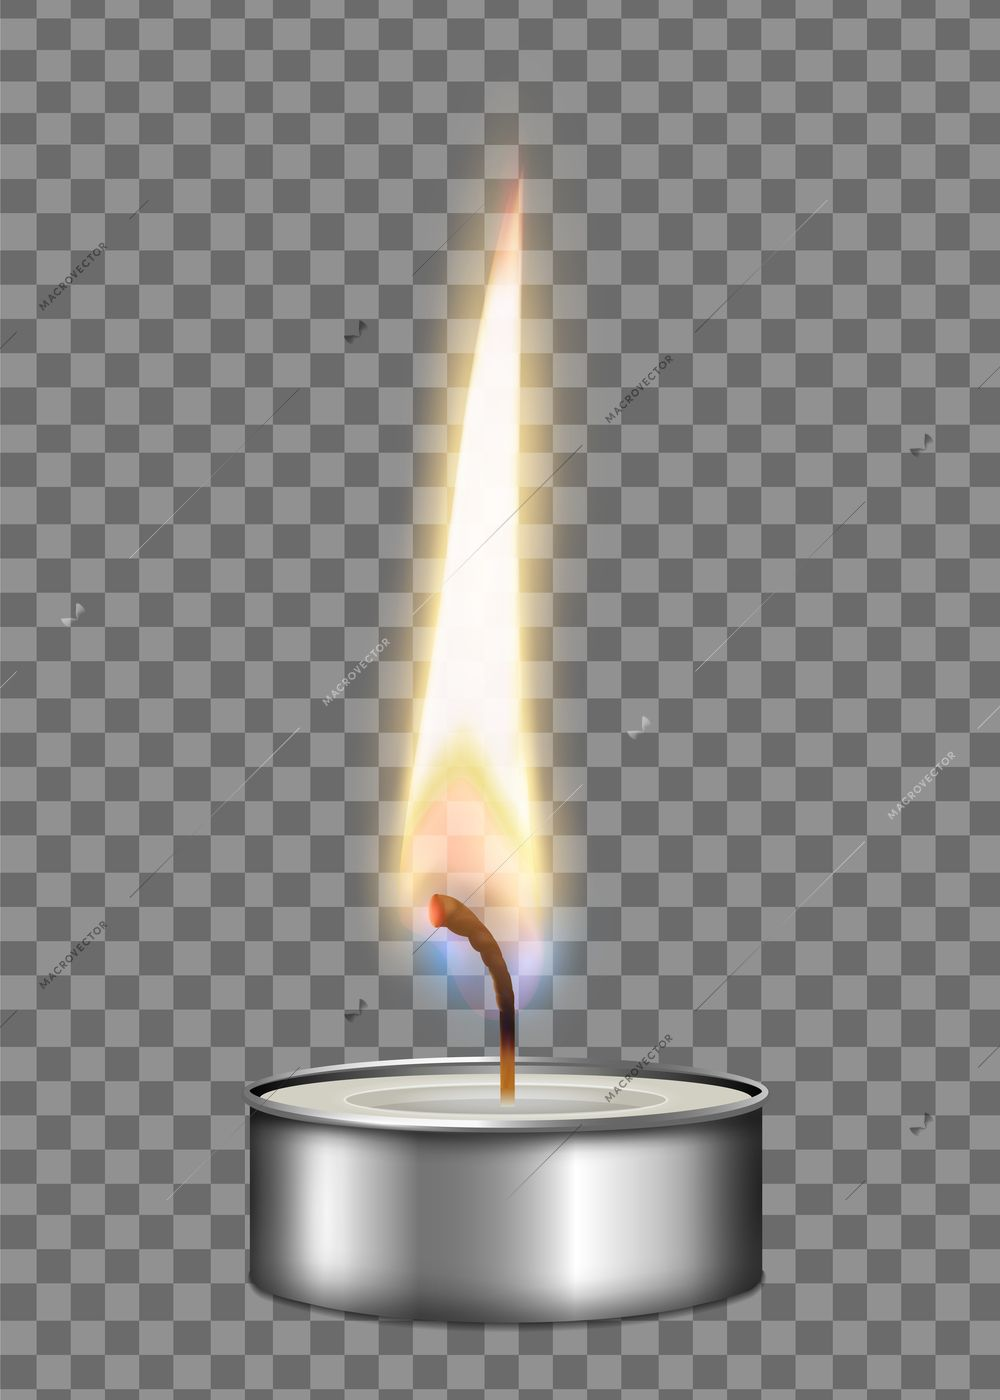 Colored Realistic Candle Metal Case Flame Fire Light Composition On Transparent Background Vector Illustration Realistic Candles Candle Fire Candle Flames